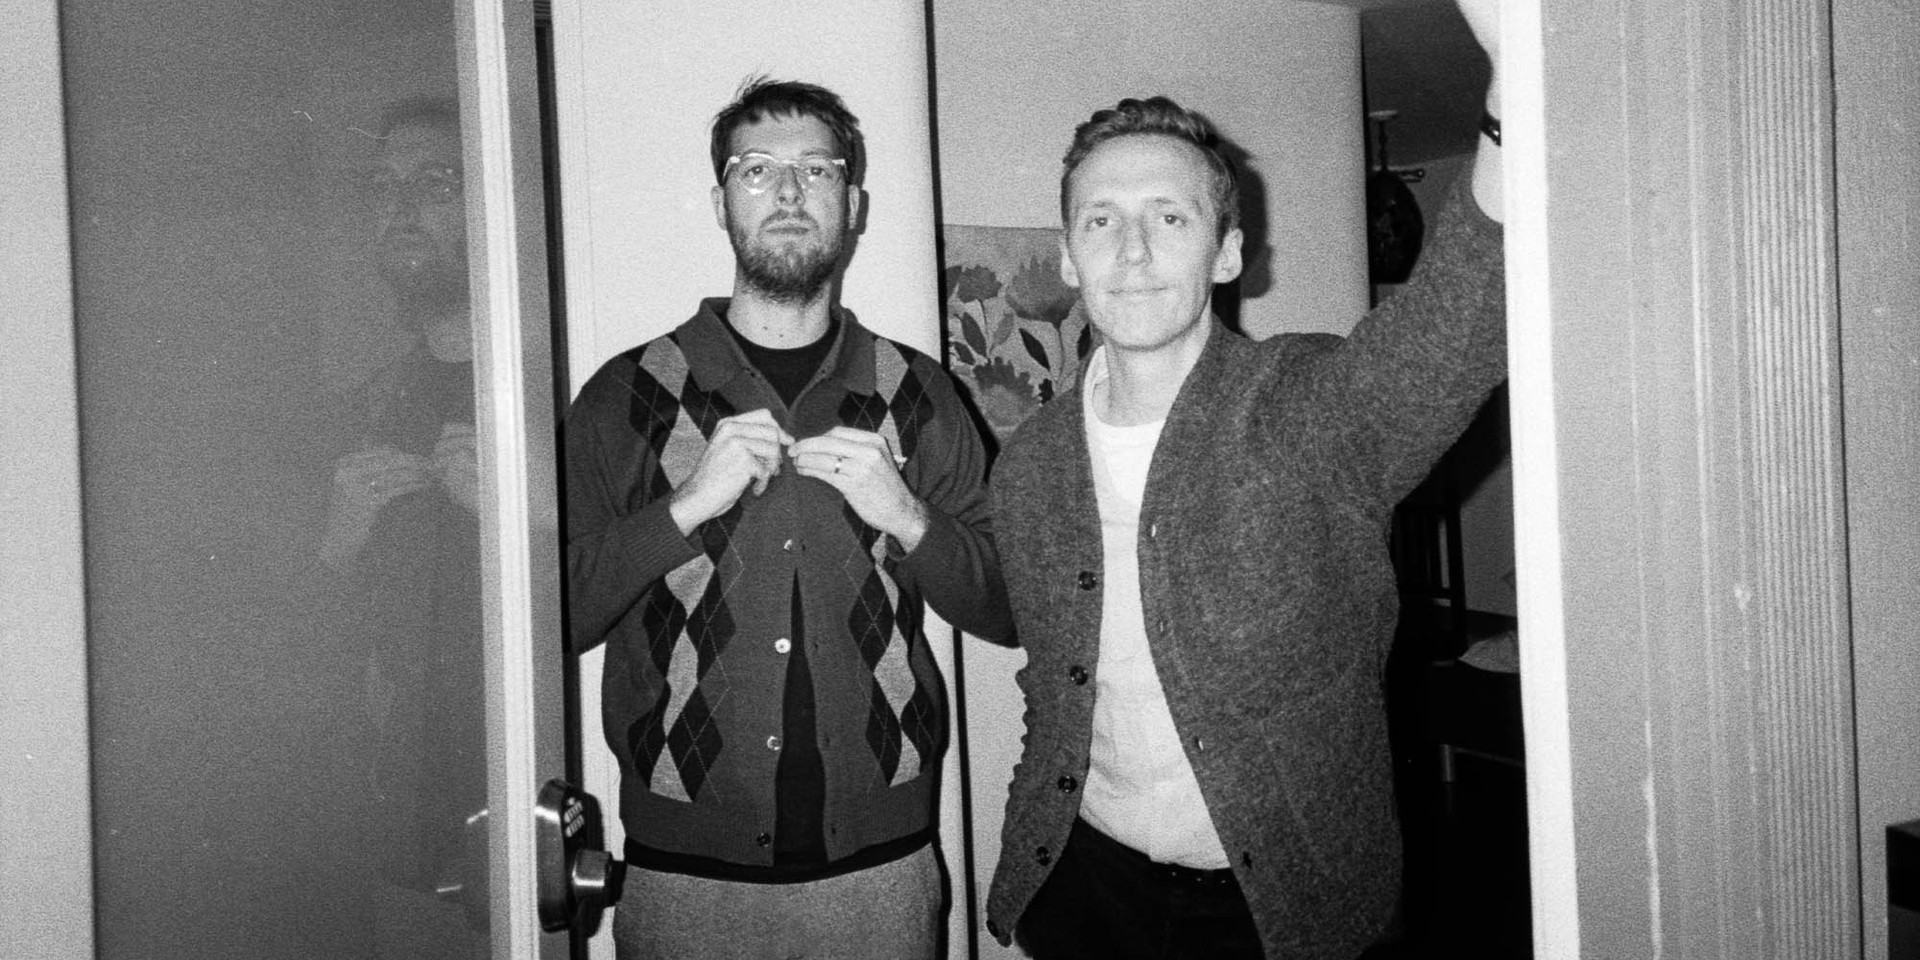 HONNE's no song without you mixtape is a reminder to smile more and embrace beautiful imperfections